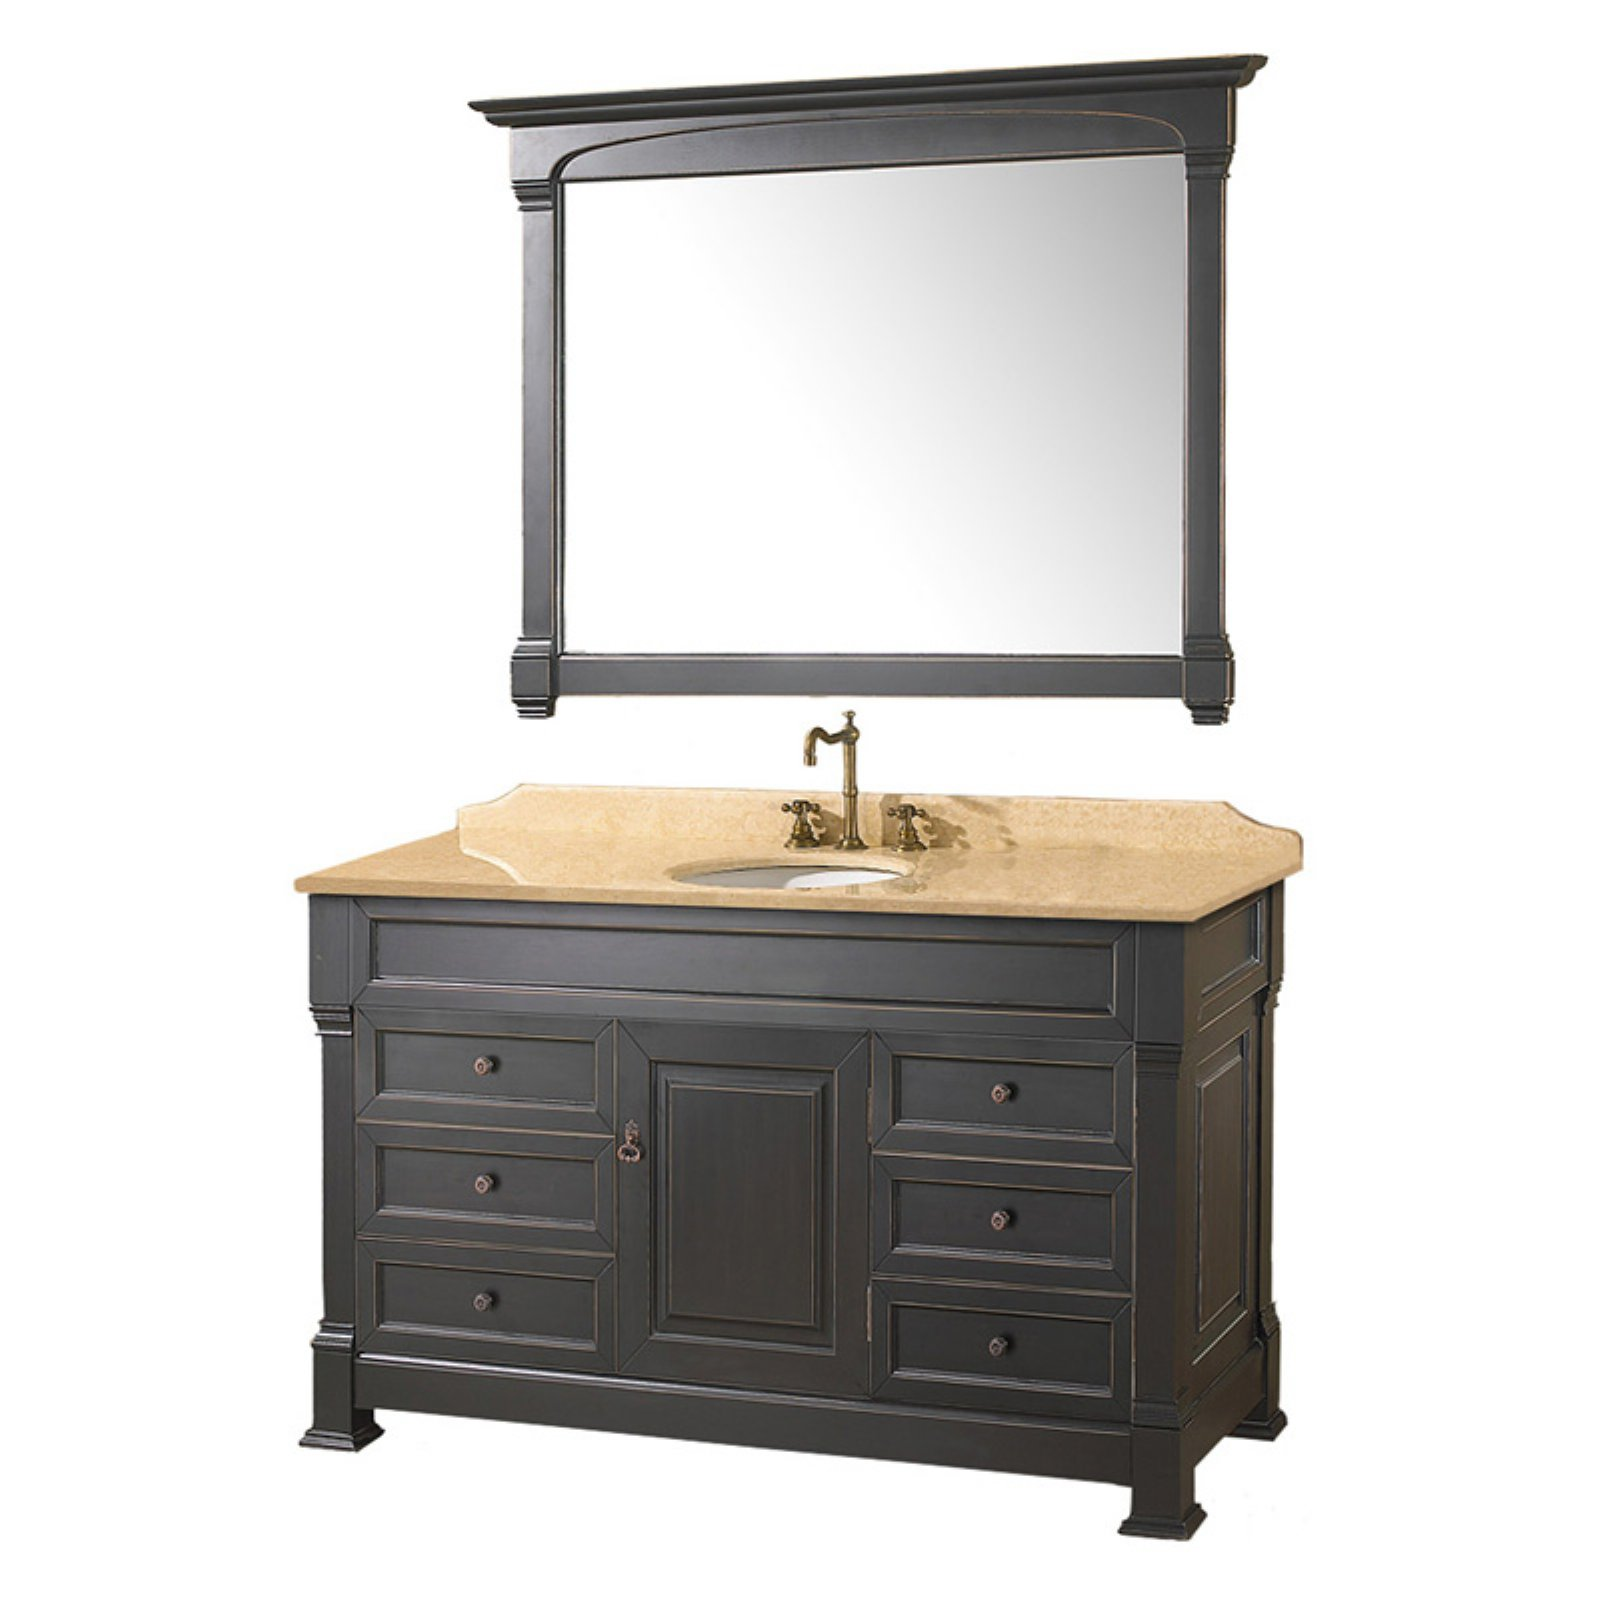 Wyndham Collection Andover 55 Inch Single Bathroom Vanity In Black, Ivory  Marble Countertop, Undermount